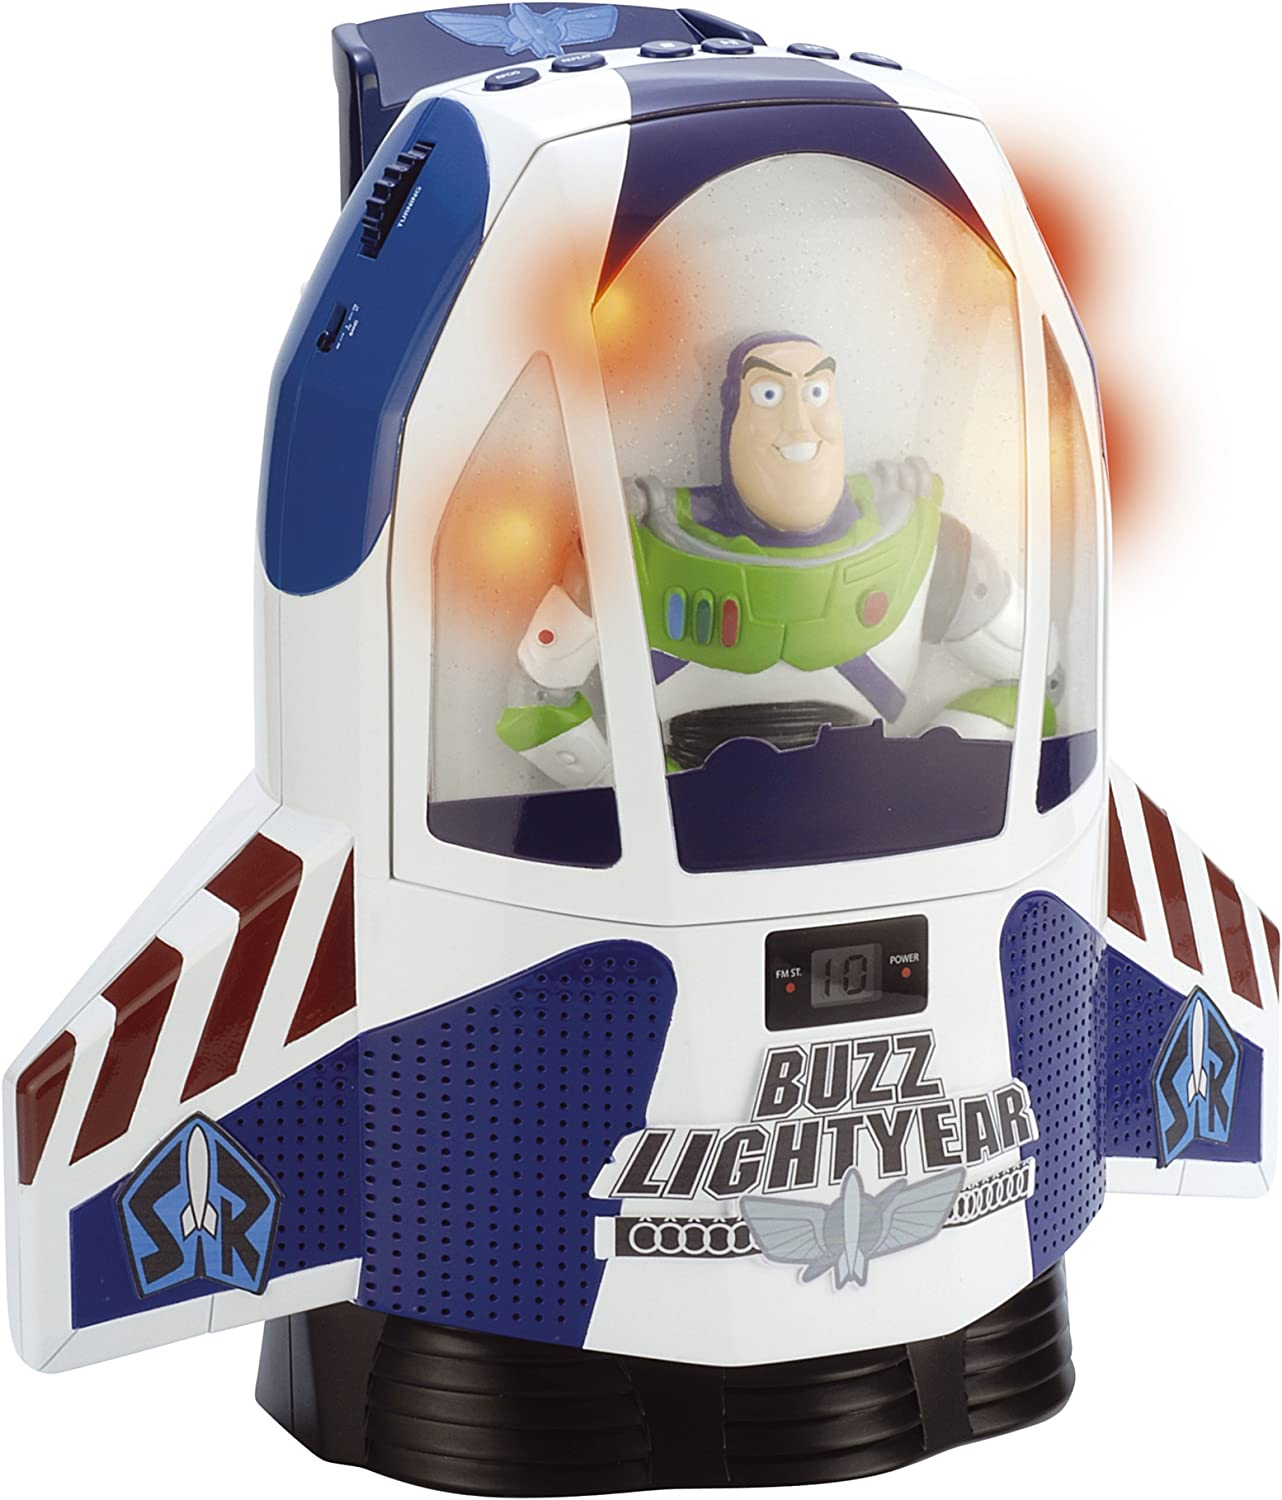 Cefatronic CD Player Toy Story